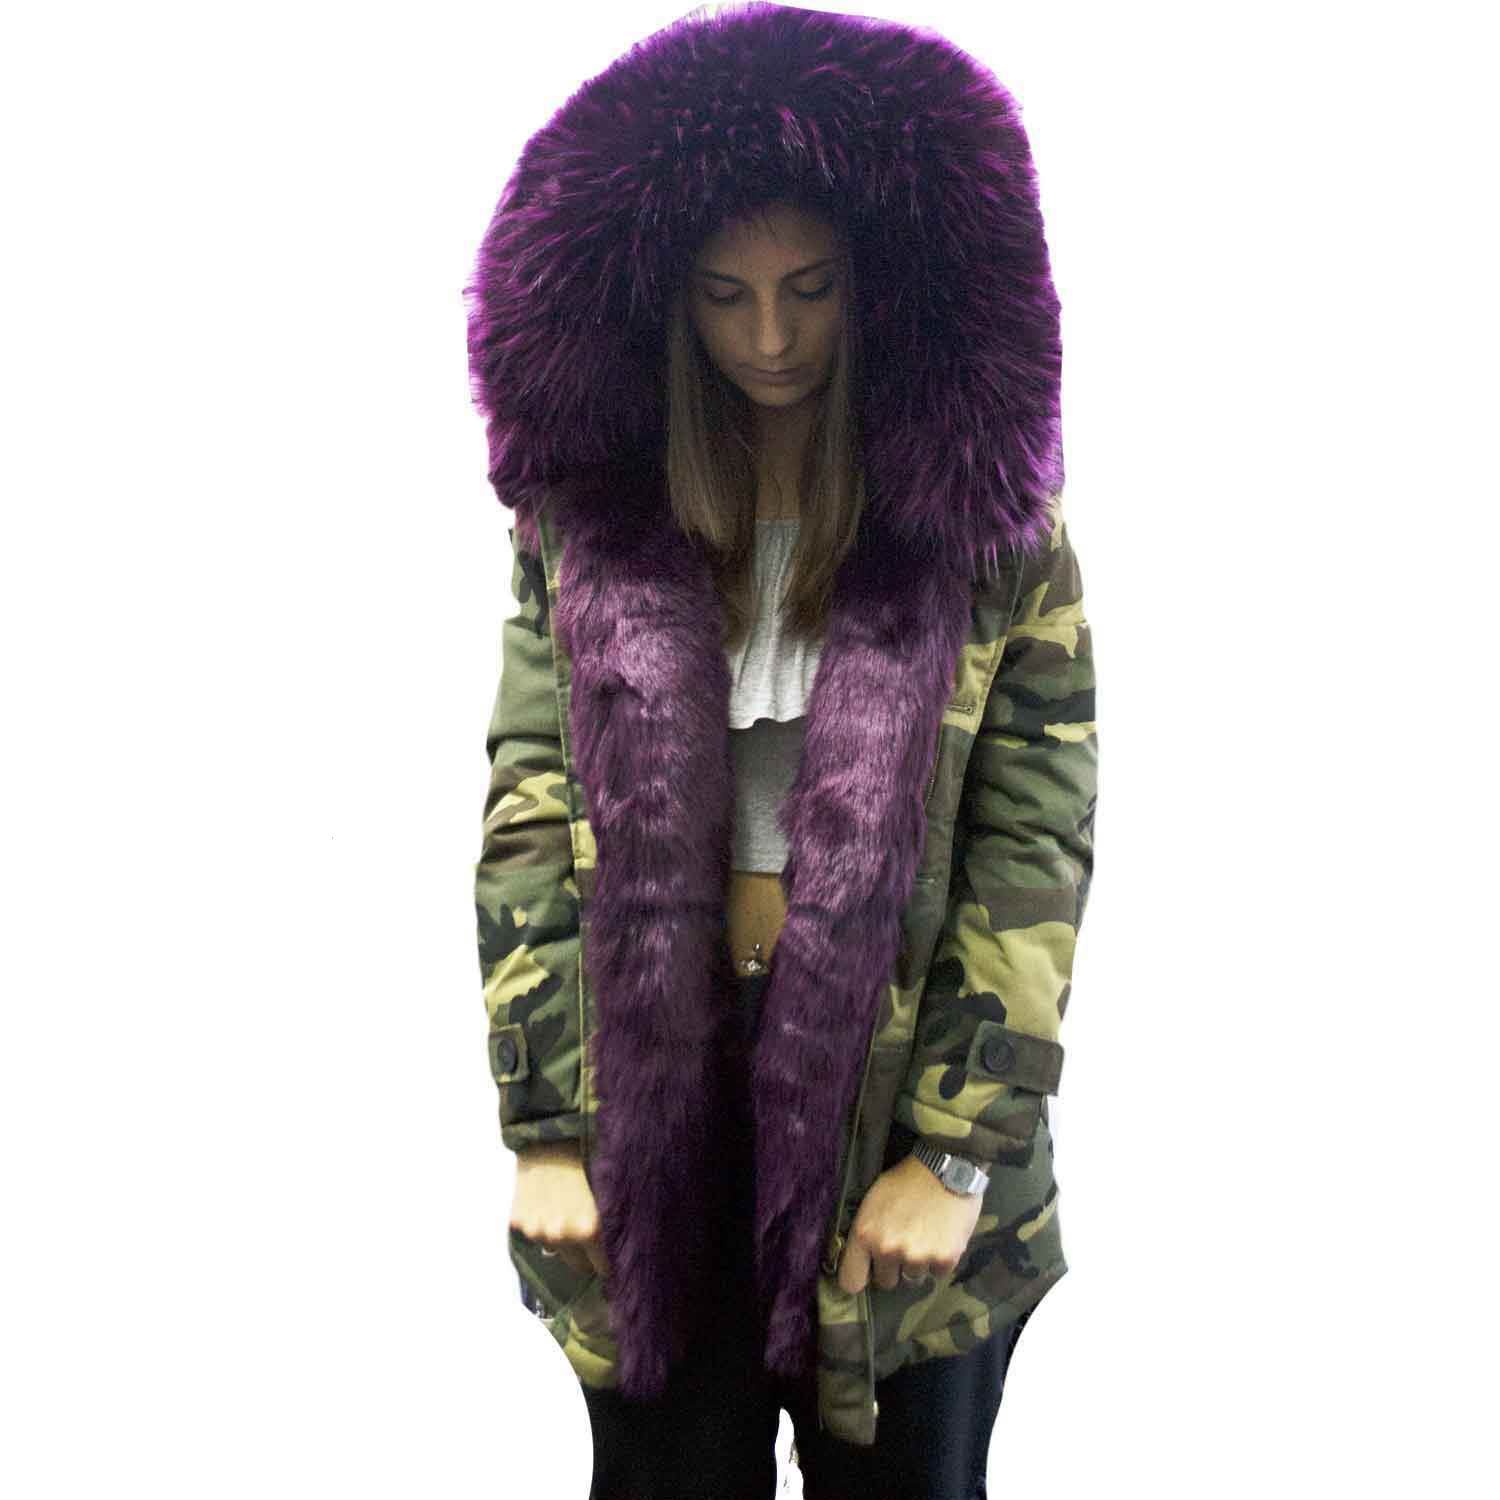 New parka corto mimetico purple con pelliccia colorata voluminosa glamour.